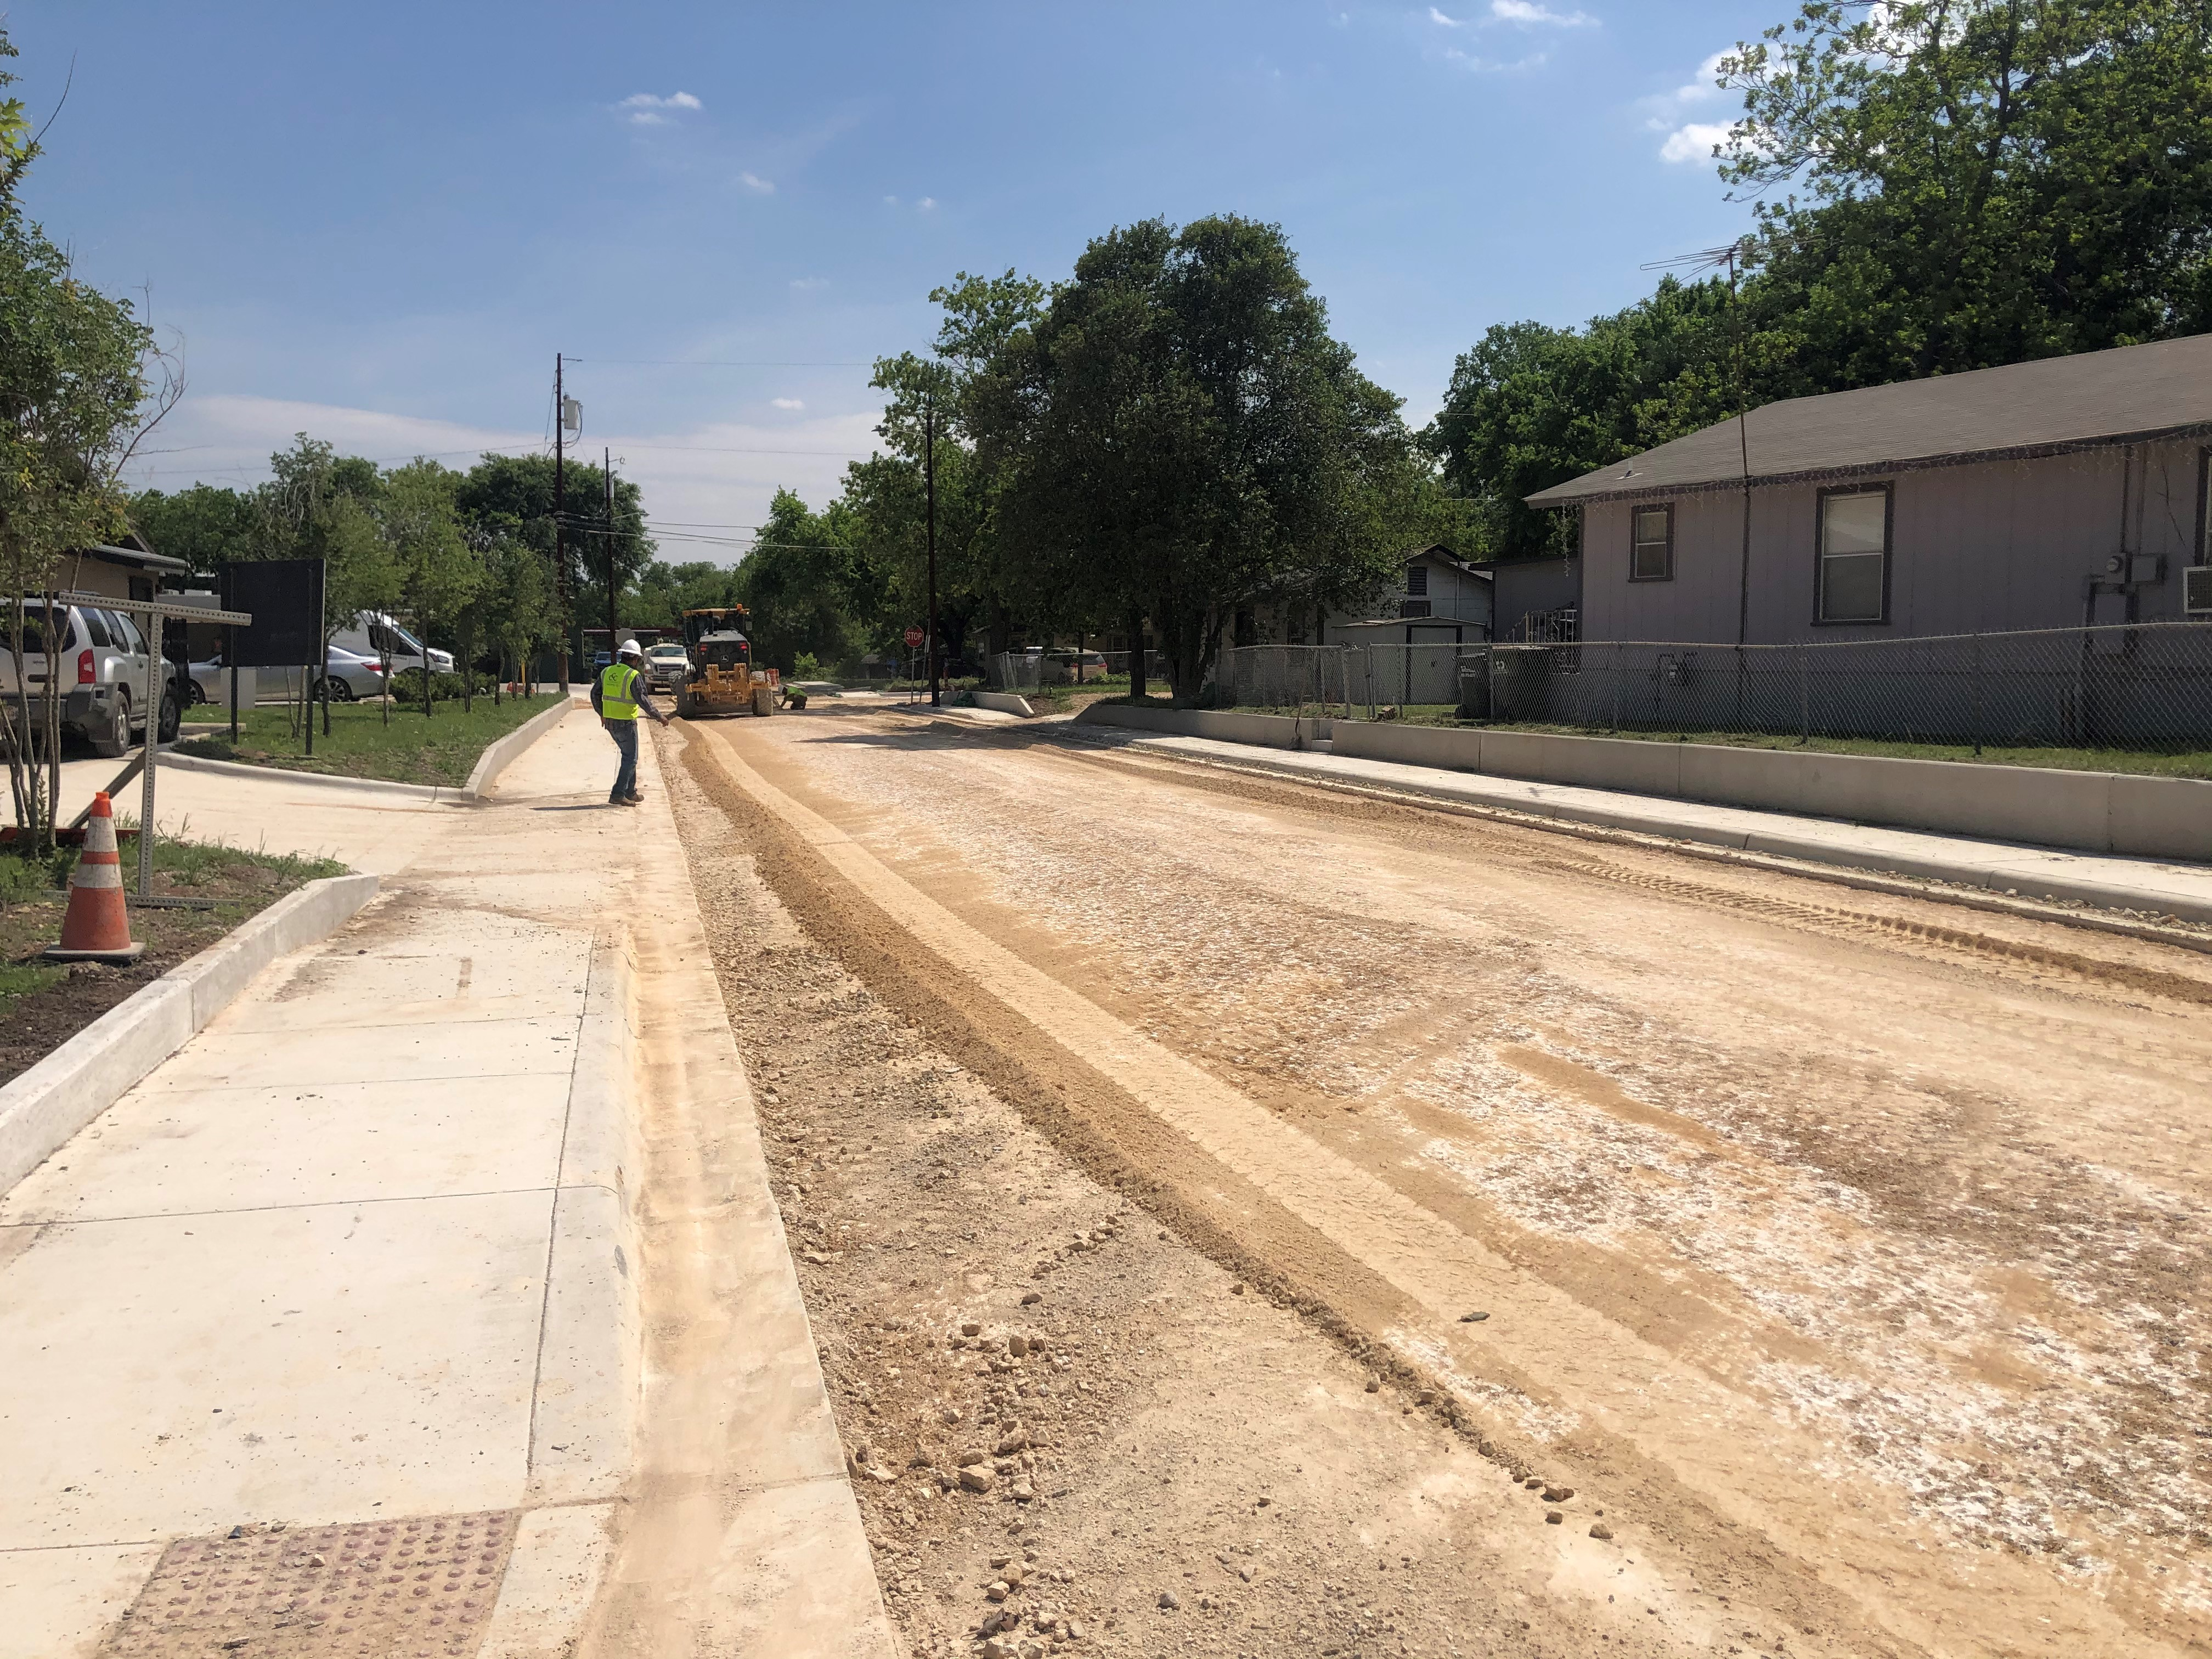 April road work in Victory Gardens